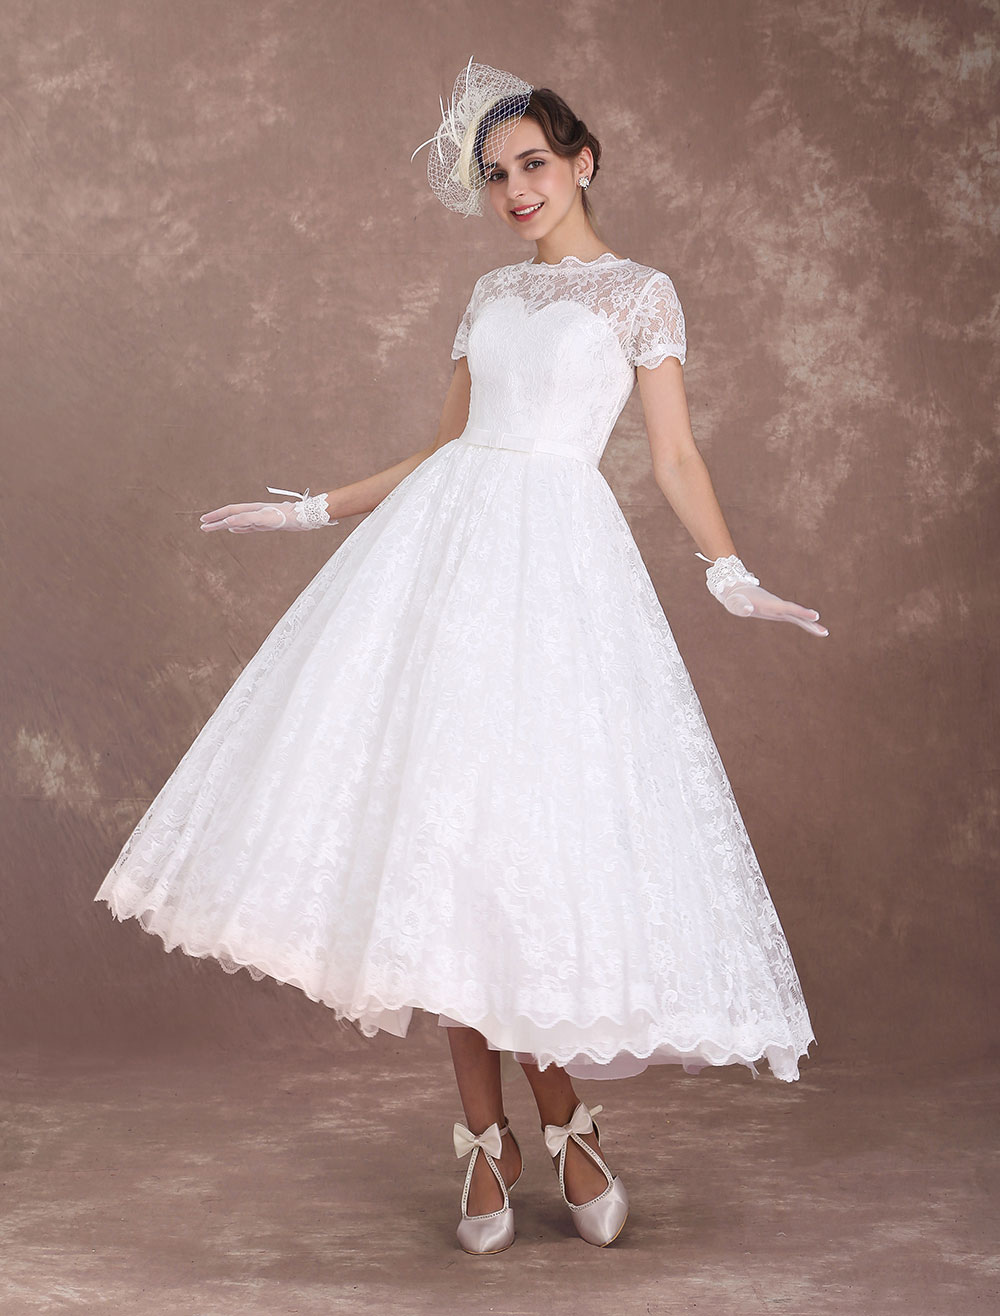 Lace Wedding Dresses Short Sleeve 1950